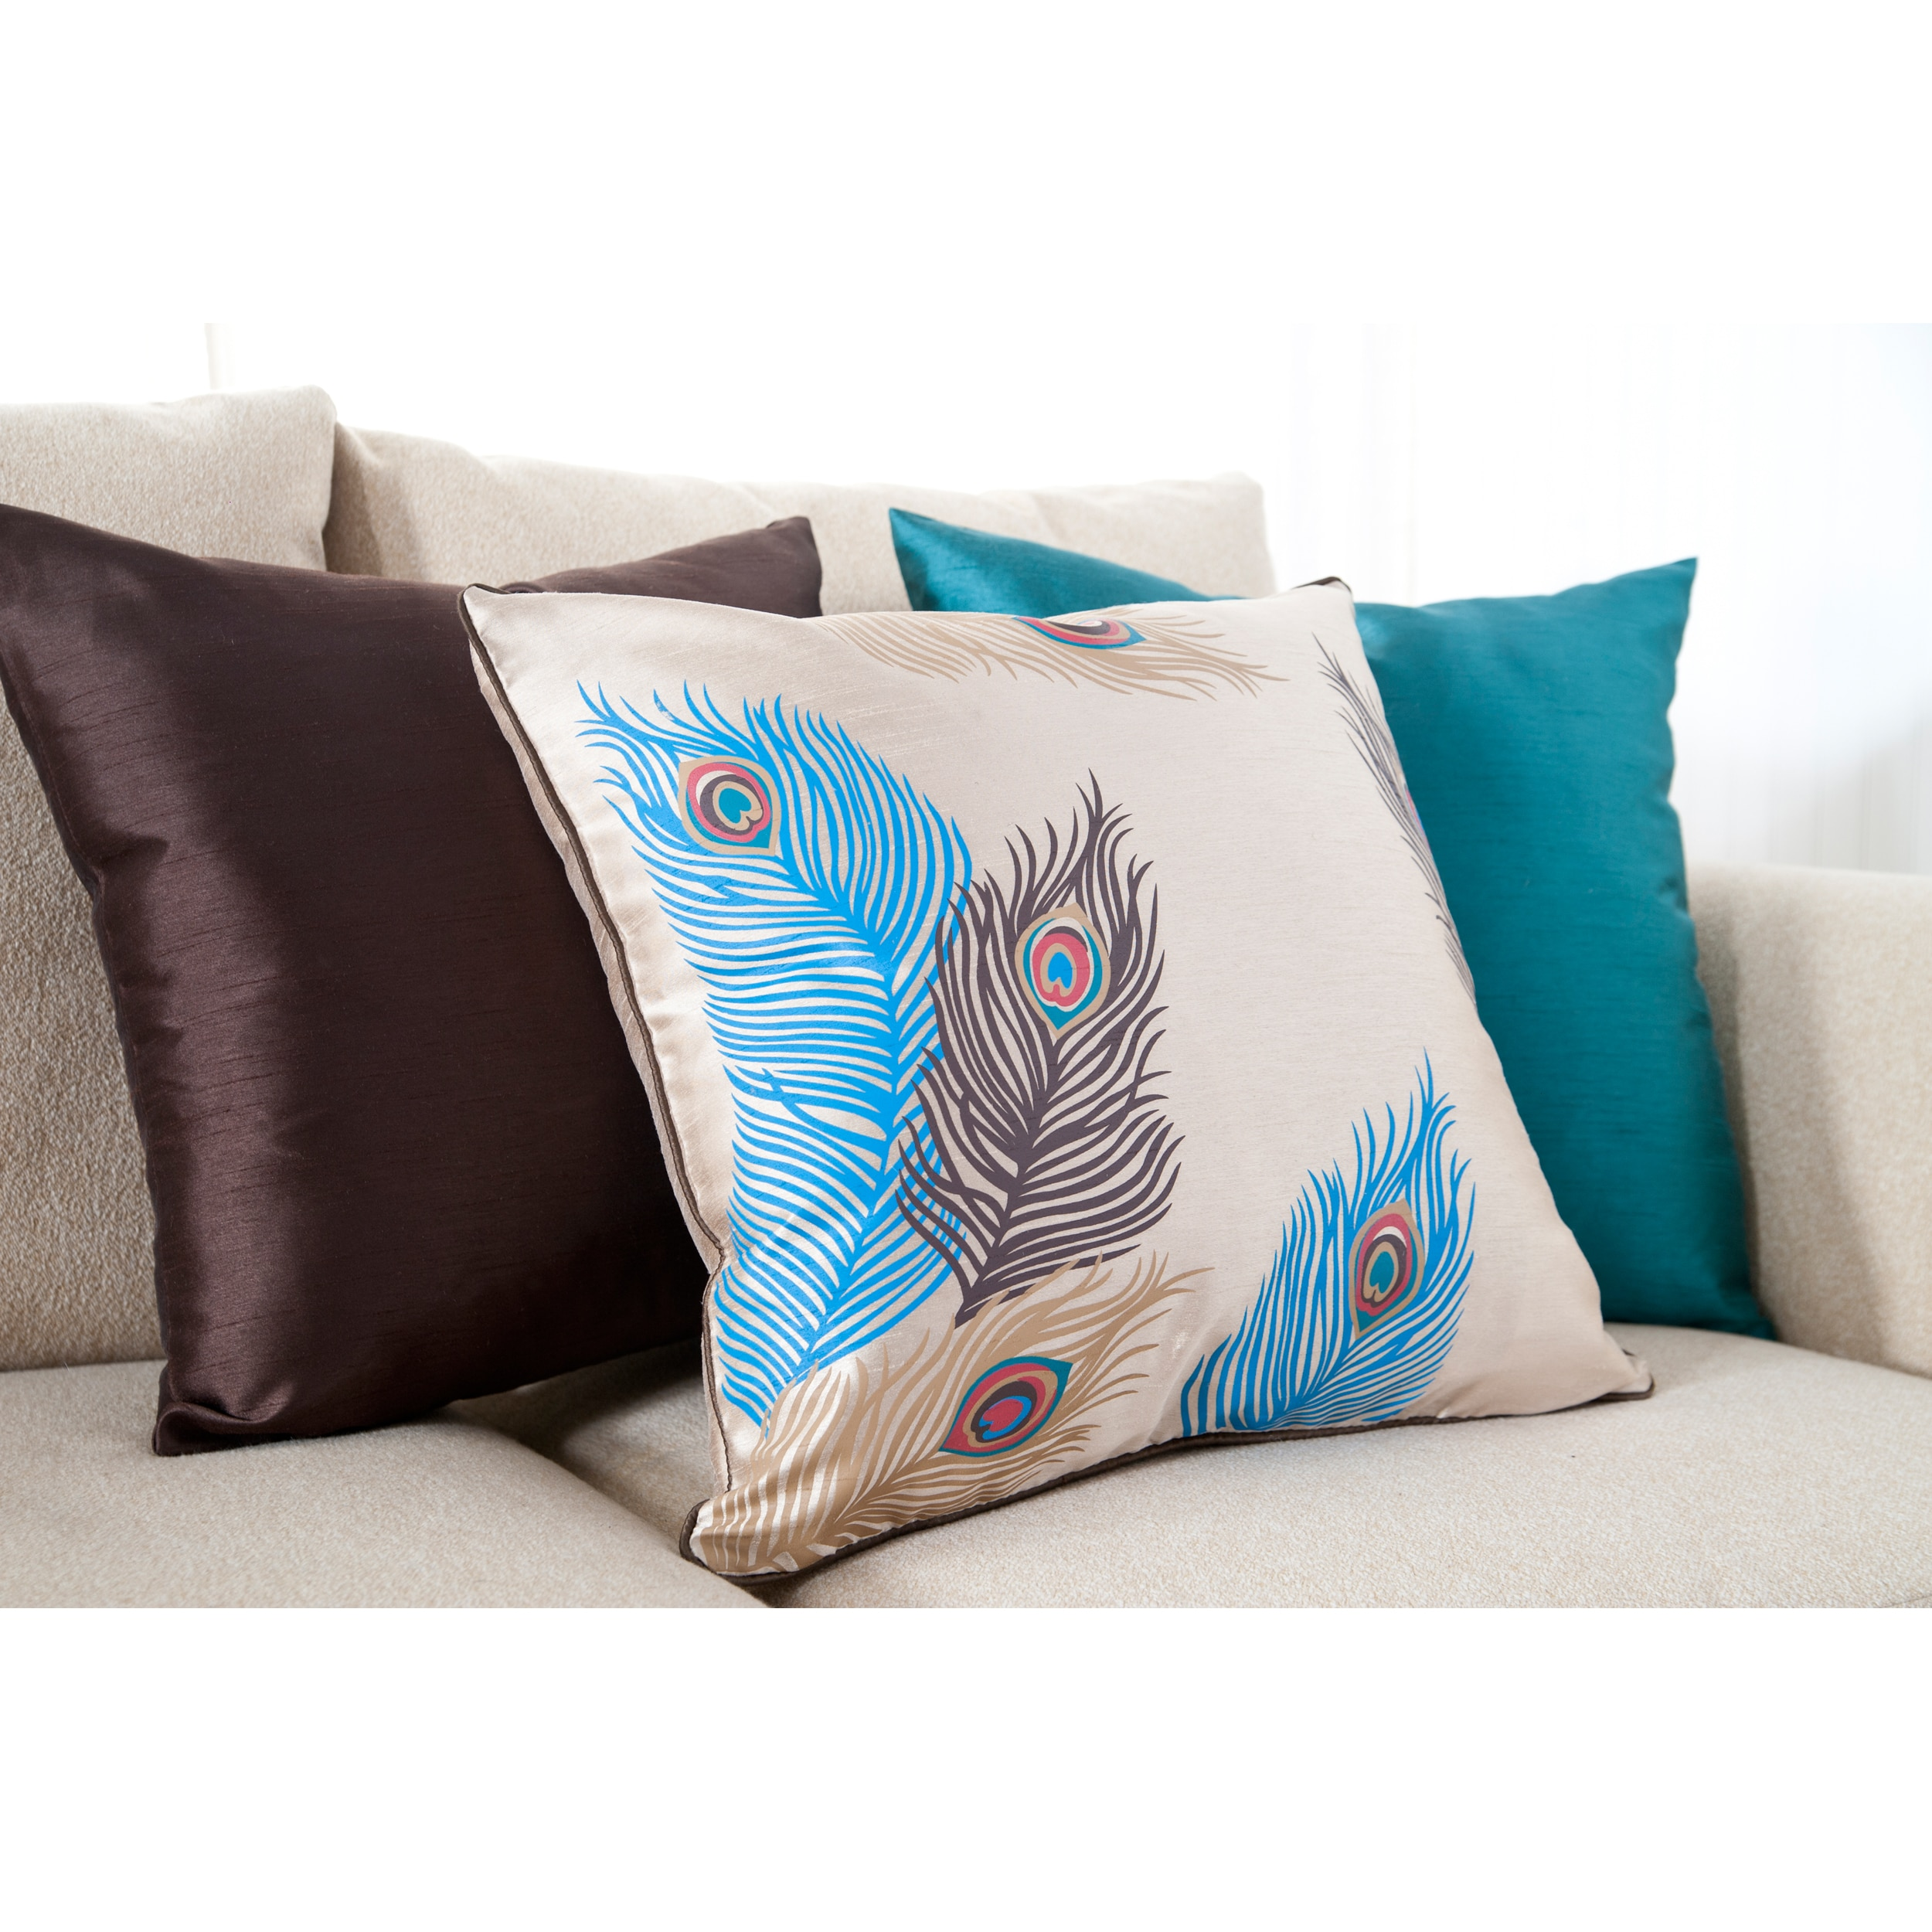 Decorative Down Pillows : Feathered Decorative 18-inch Down Pillows (Set of 3) - Free Shipping Today - Overstock.com ...